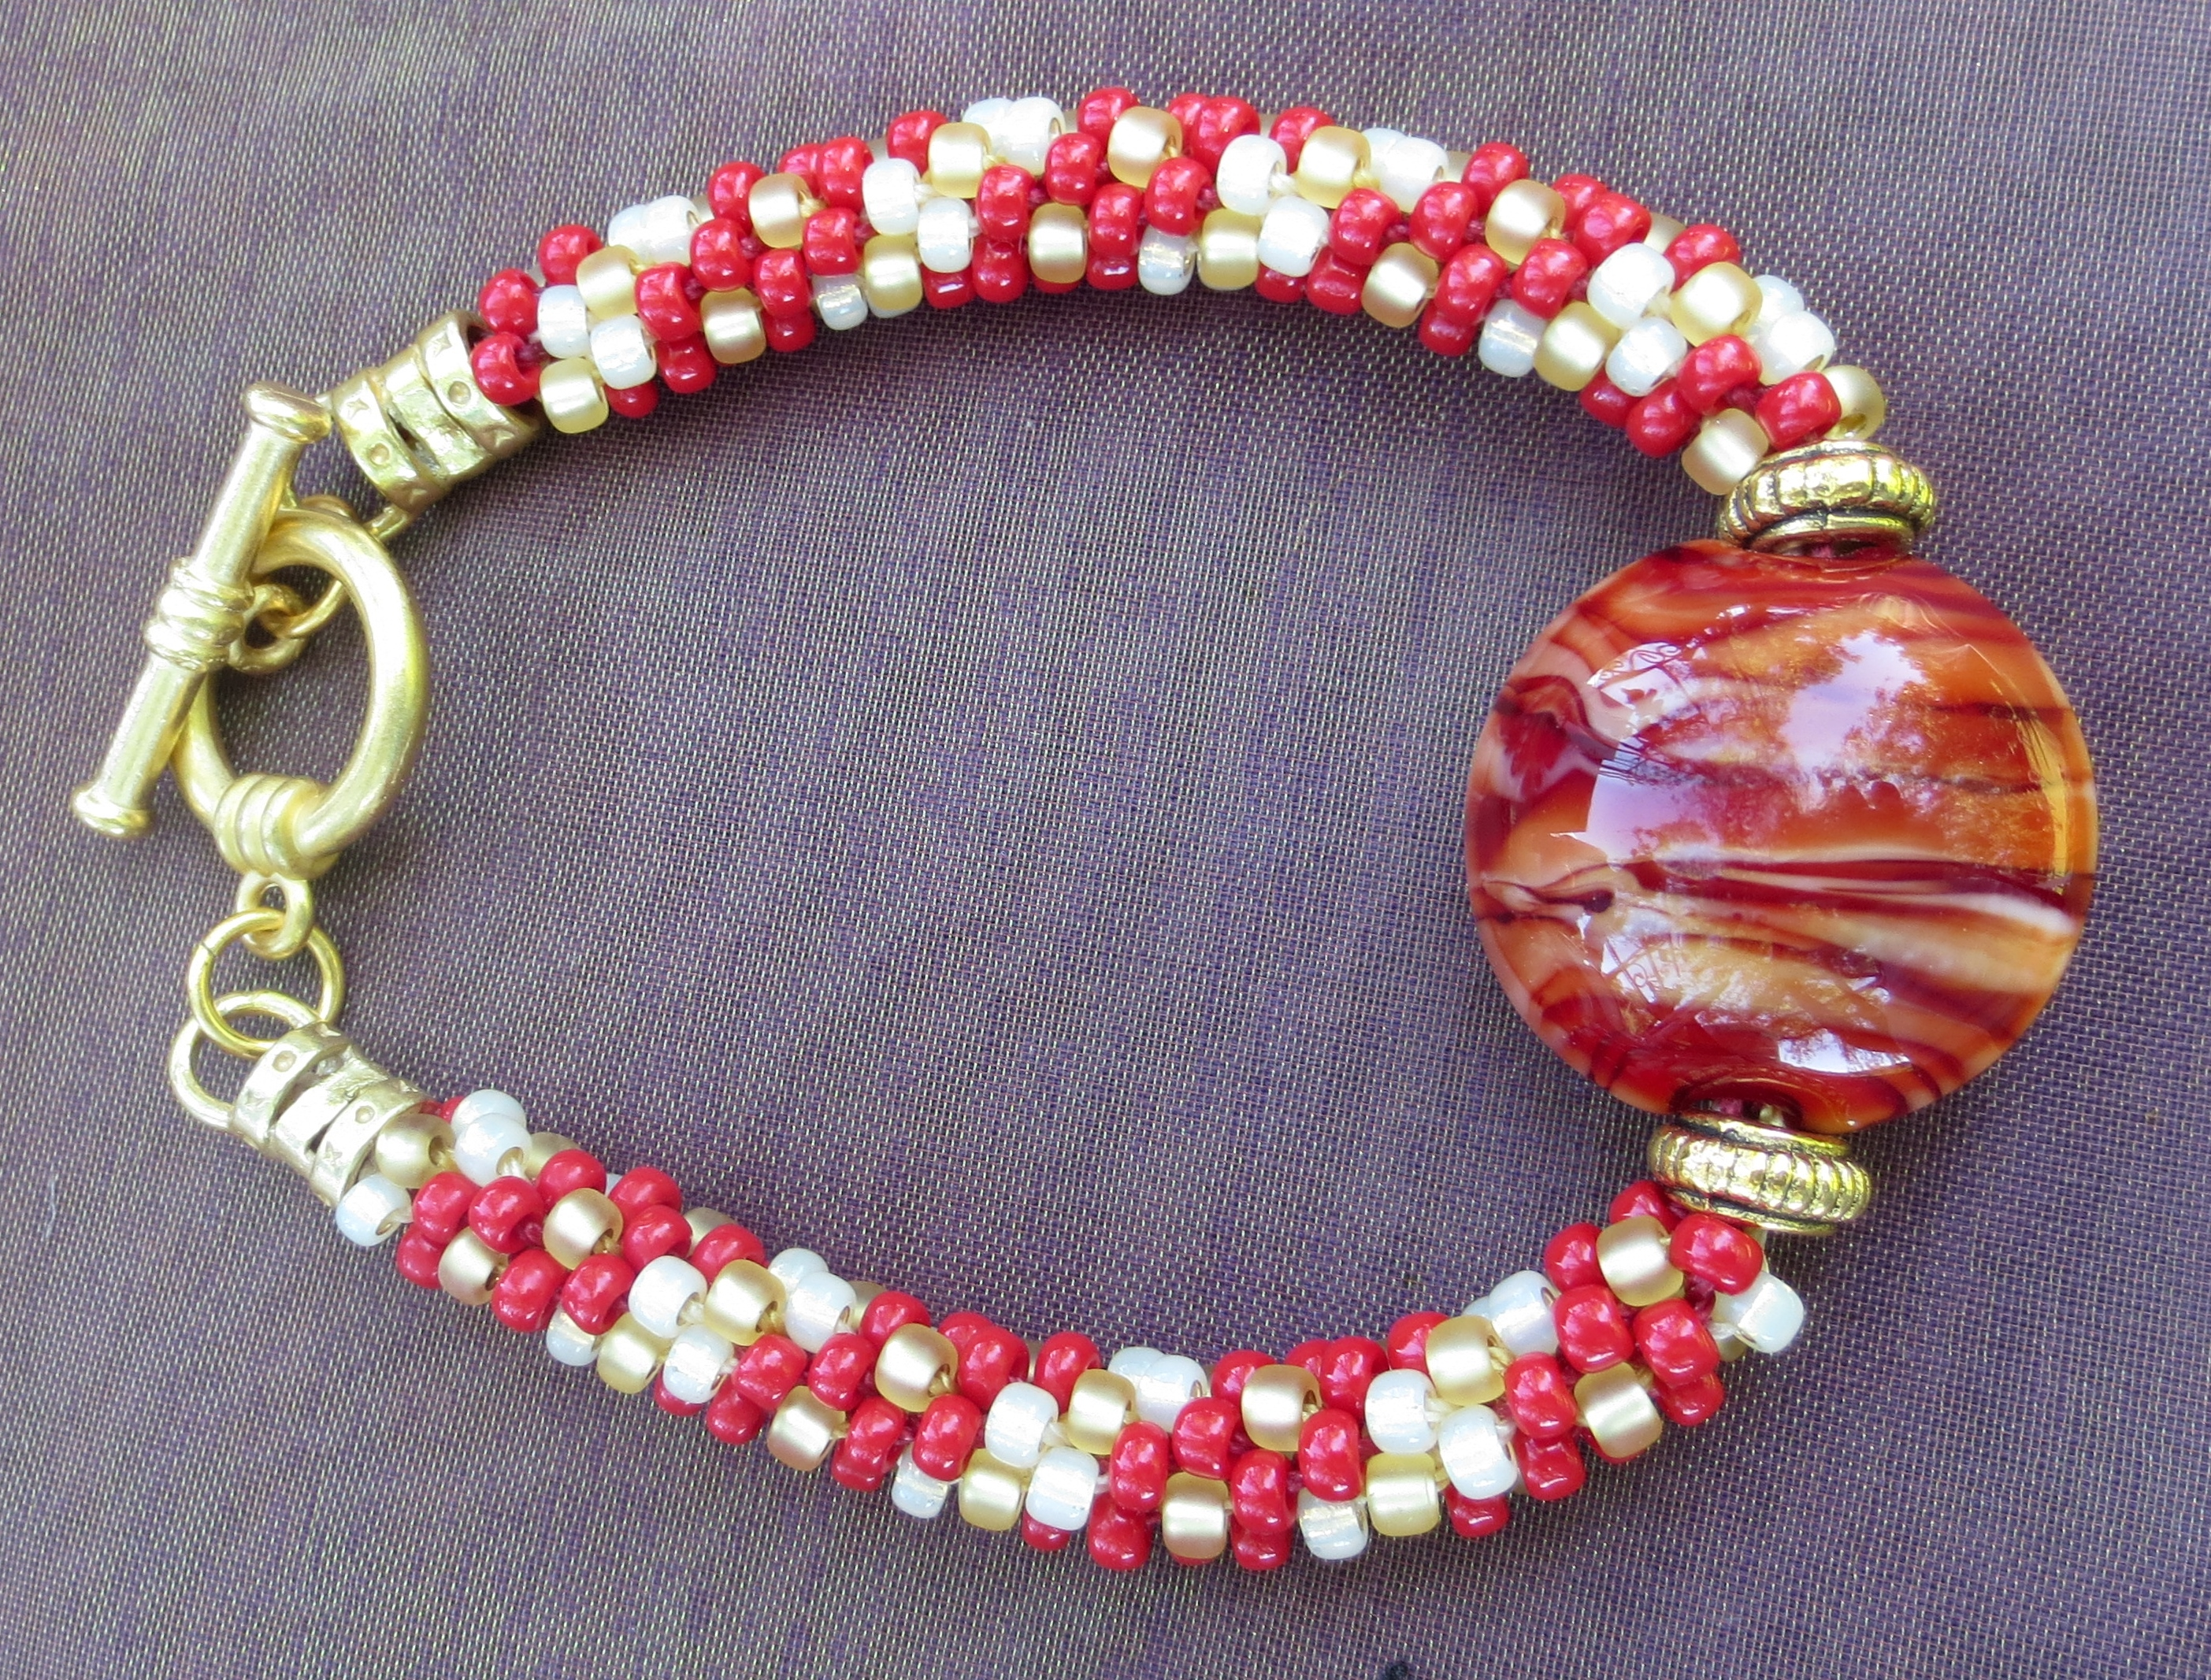 Varigated Red Lentil with Beaded Kumihimo Bracelet